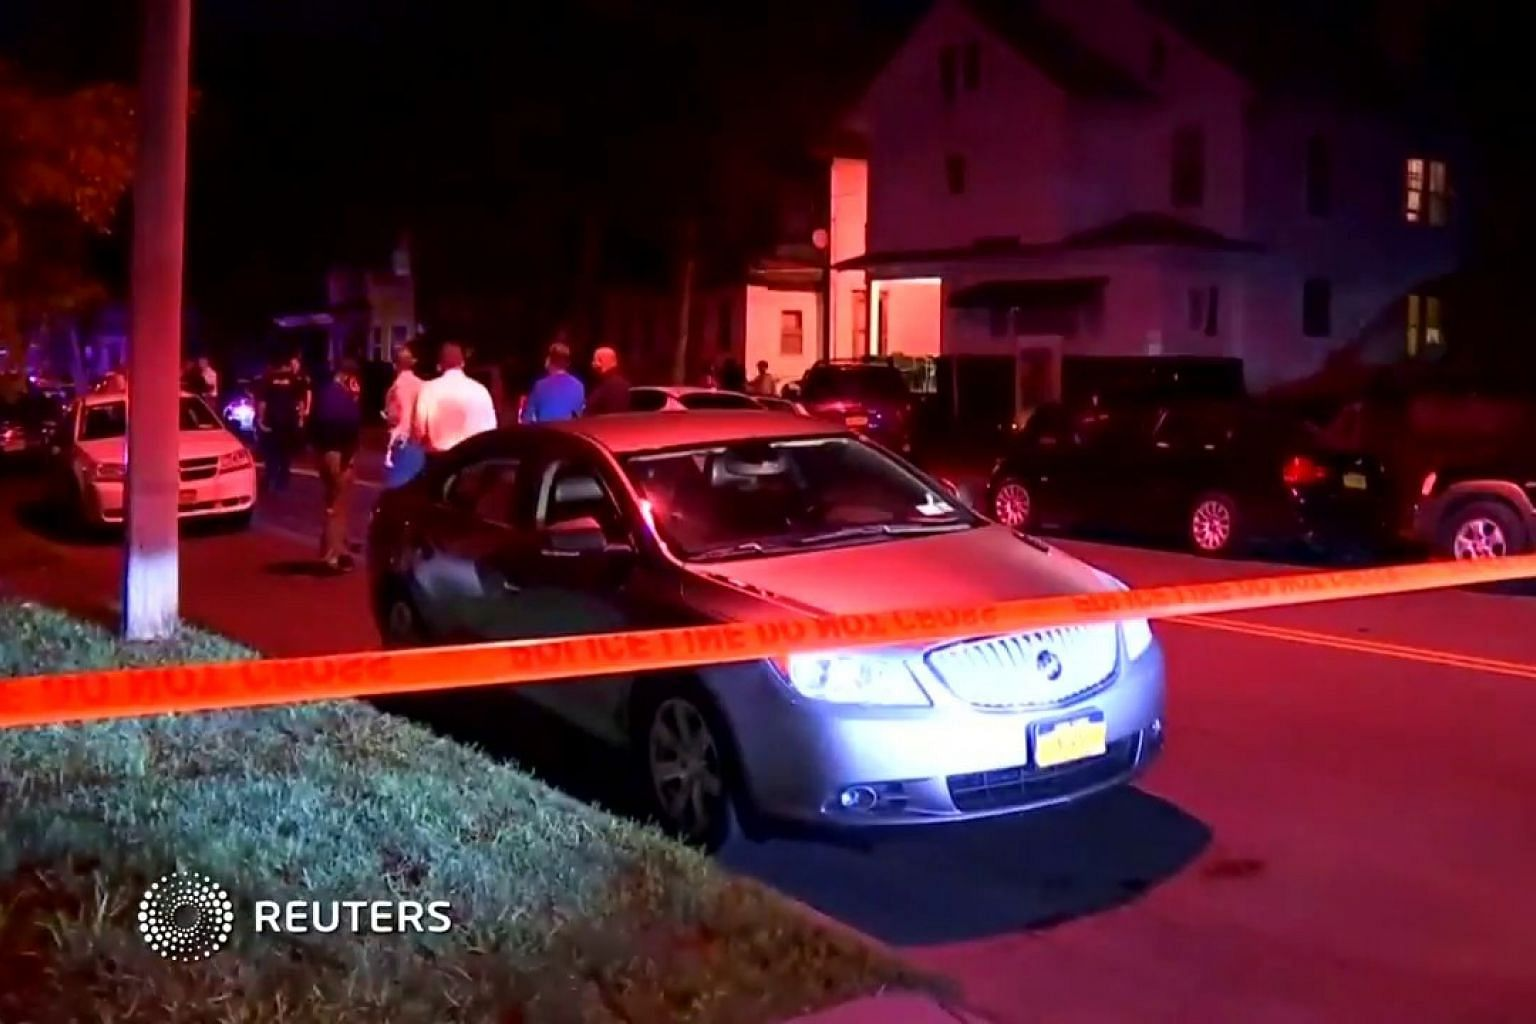 Seven people shot in Syracuse, New York: Reports